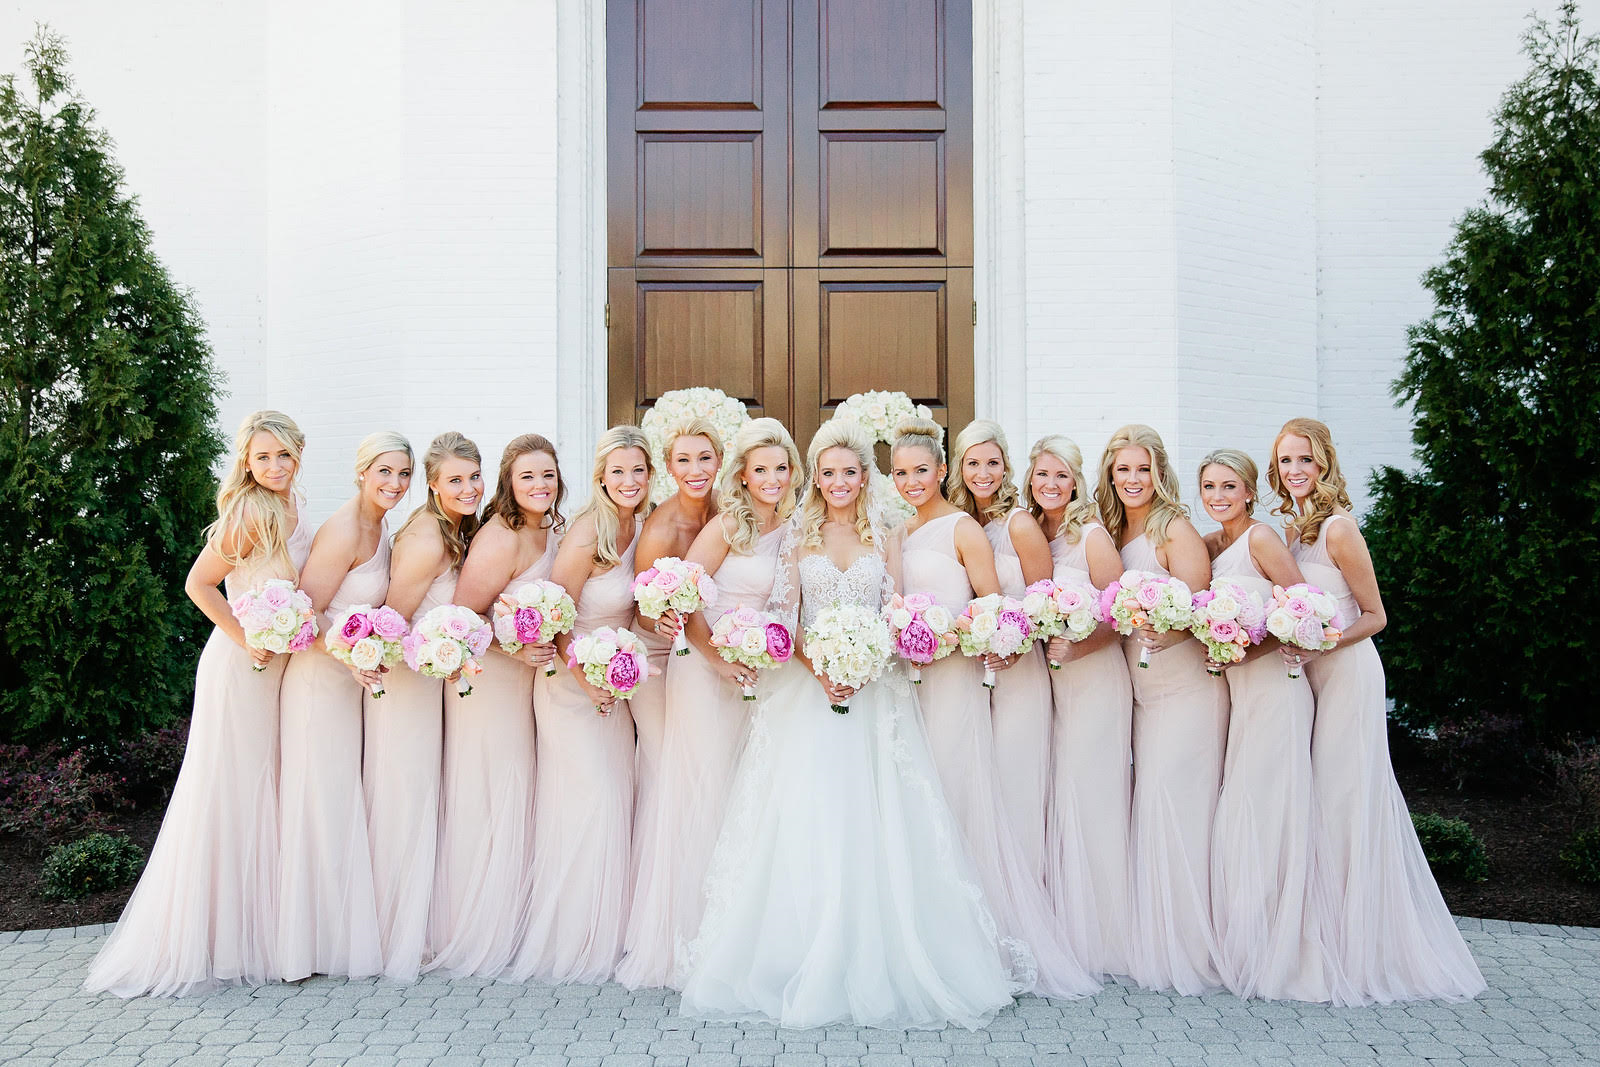 Wedding Gowns Dresses Nashville Bridal Shop B Hughes